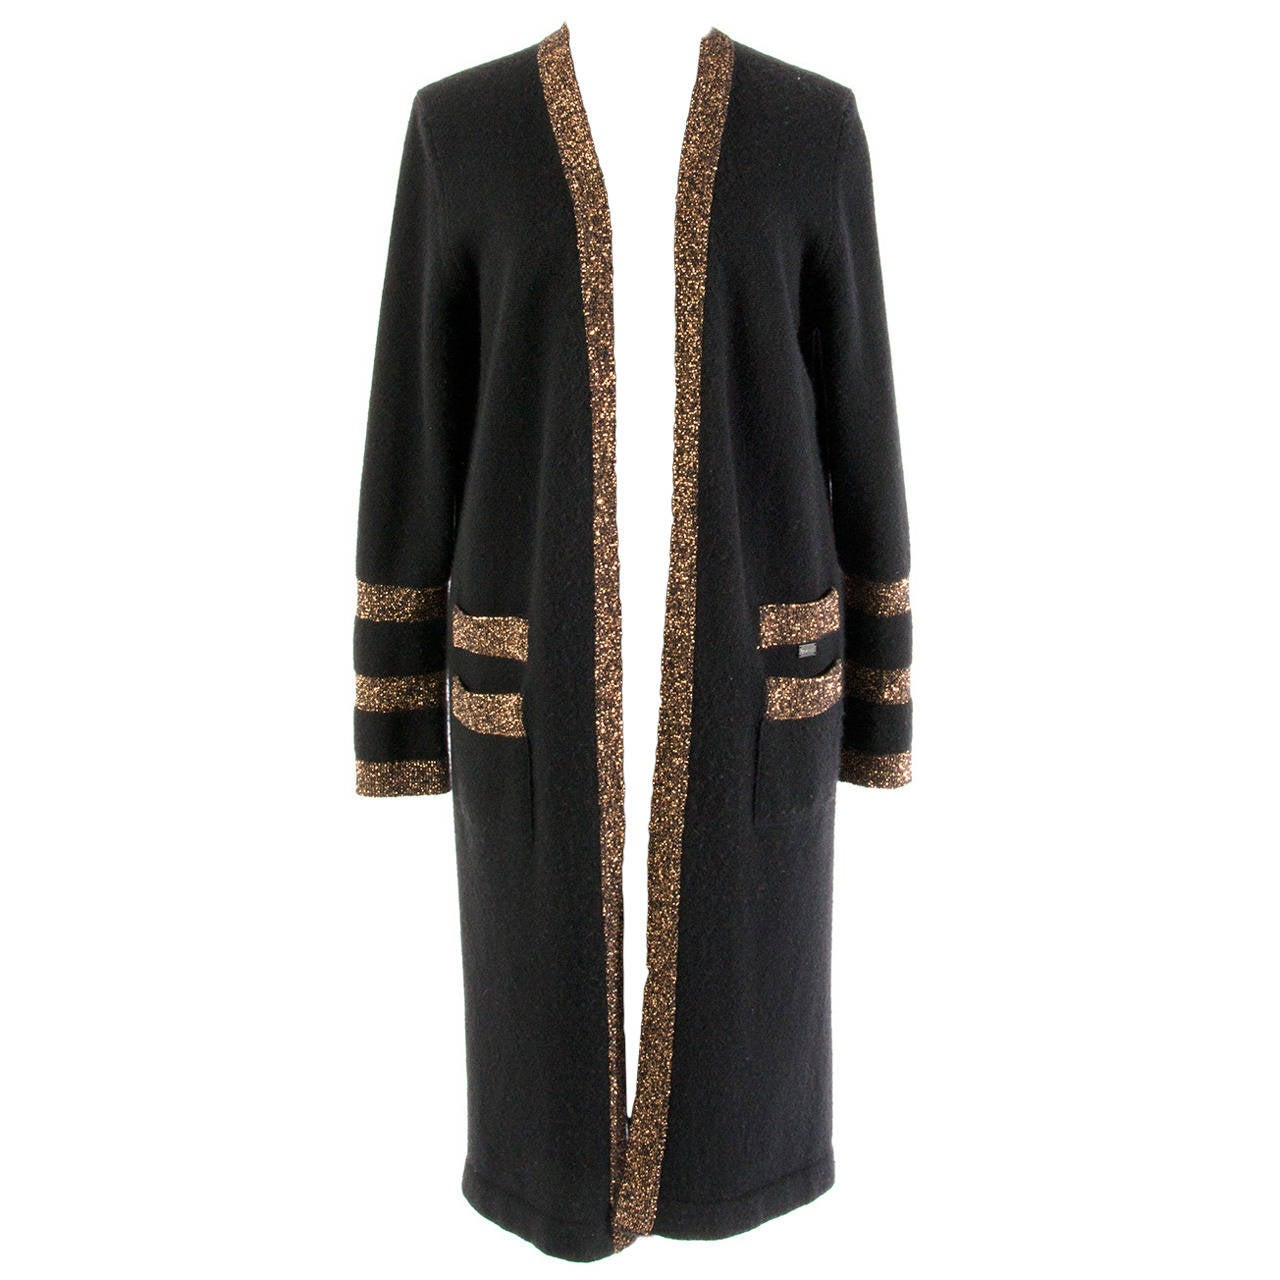 Chanel Black And Gold Cashmere Cardigan at 1stdibs